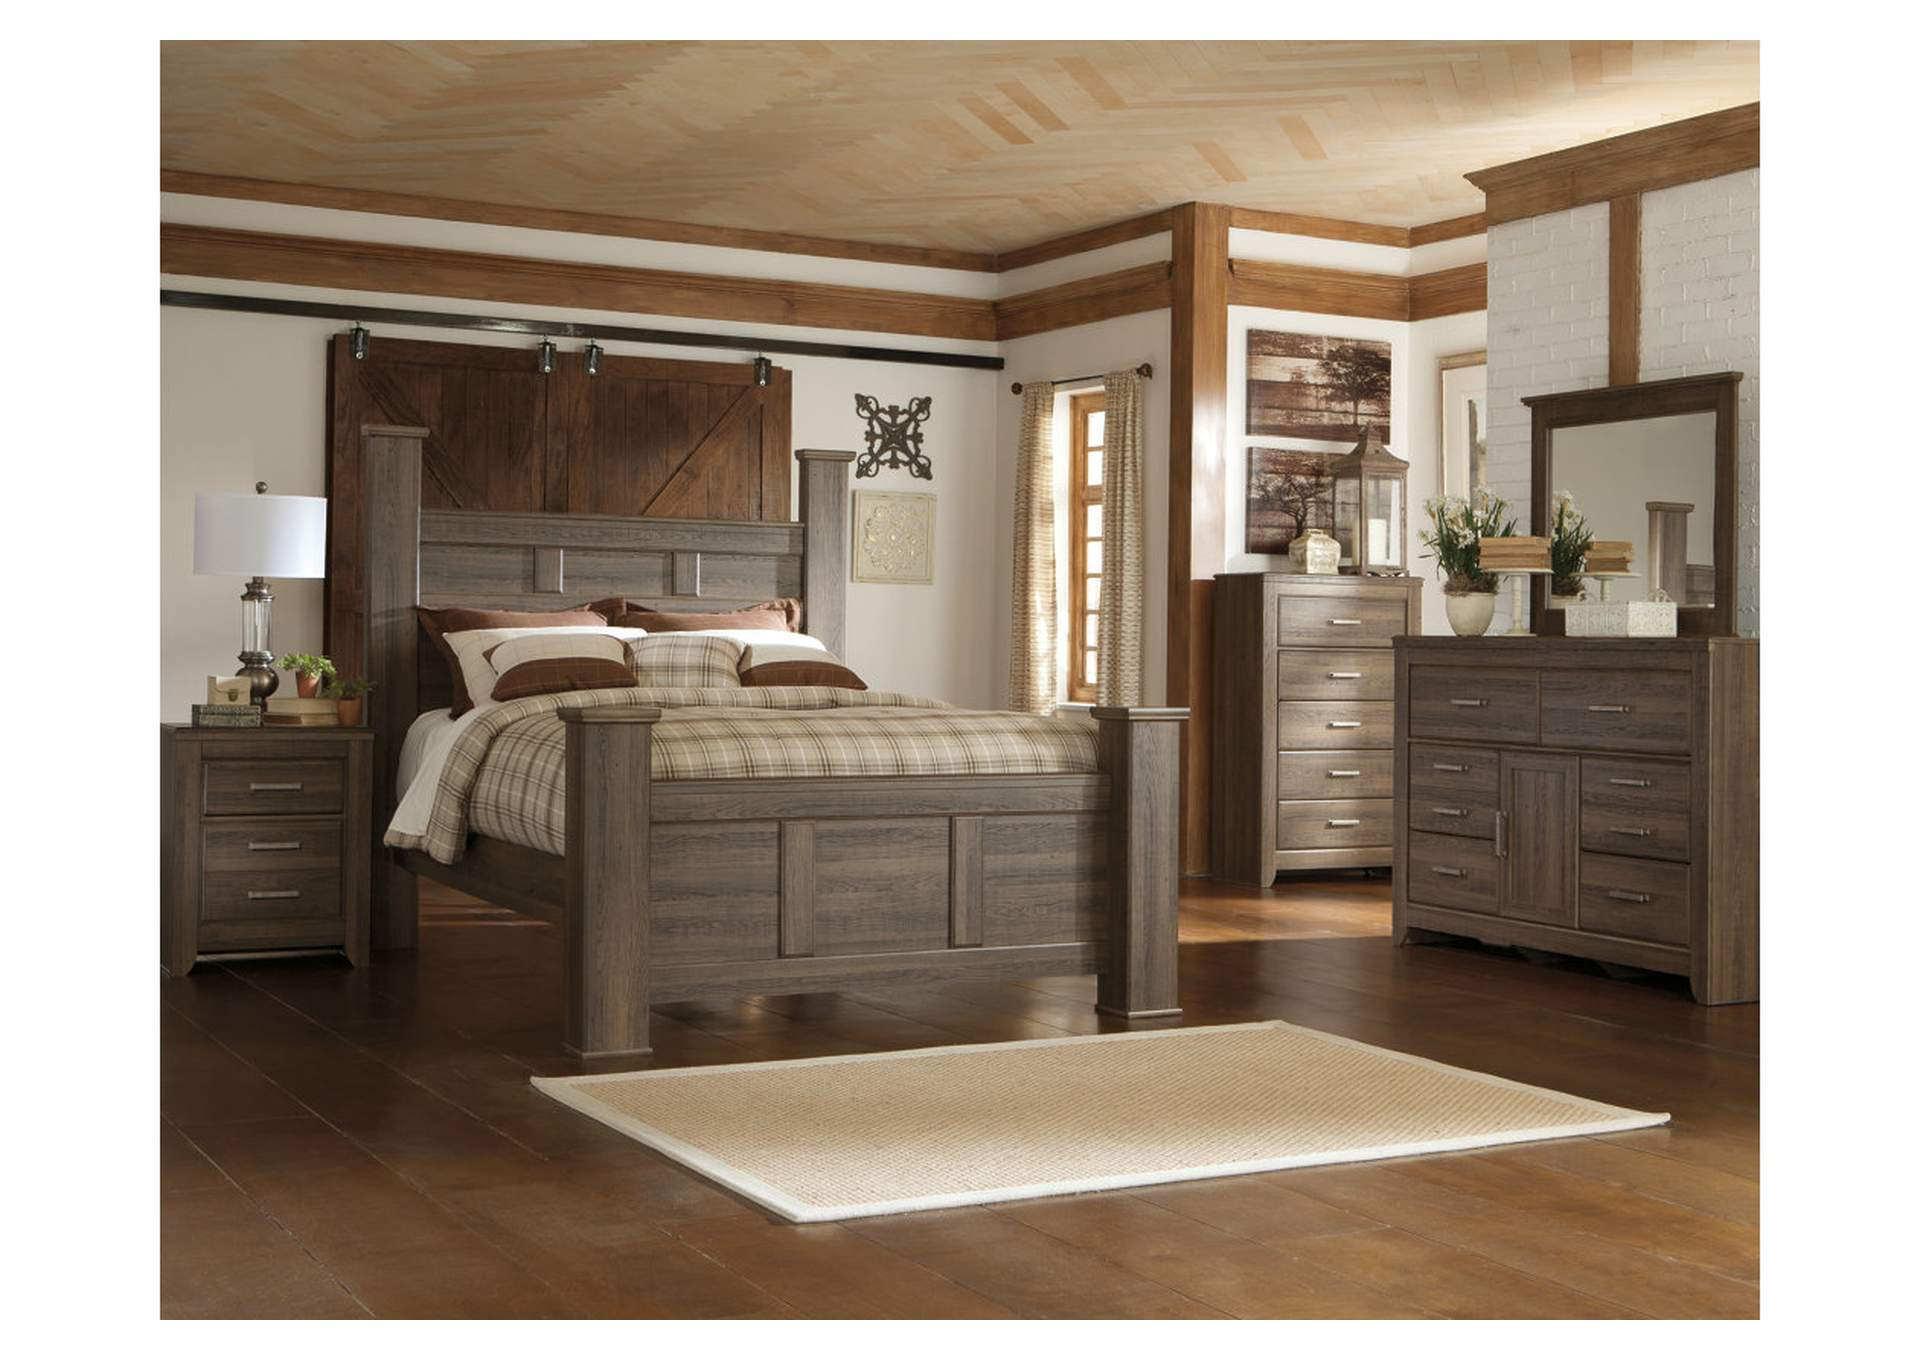 Juararo King Poster Bed w/Dresser, Mirror, Drawer Chest & Nightstand,Signature Design By Ashley